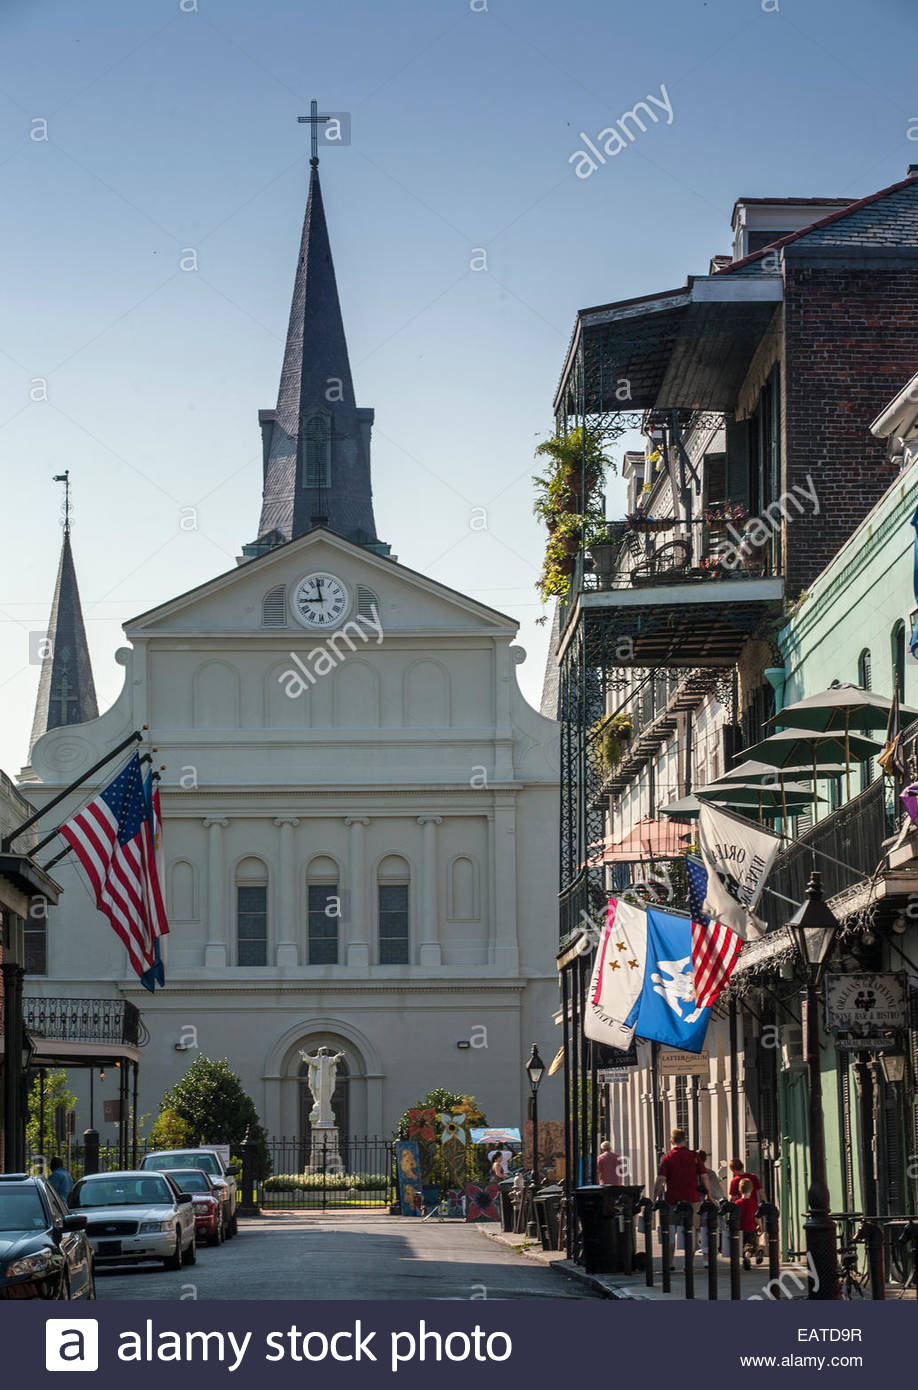 Saint Louis Cathedral and buildings ornamented with flags and balconies on Orleans Street. - Stock Image